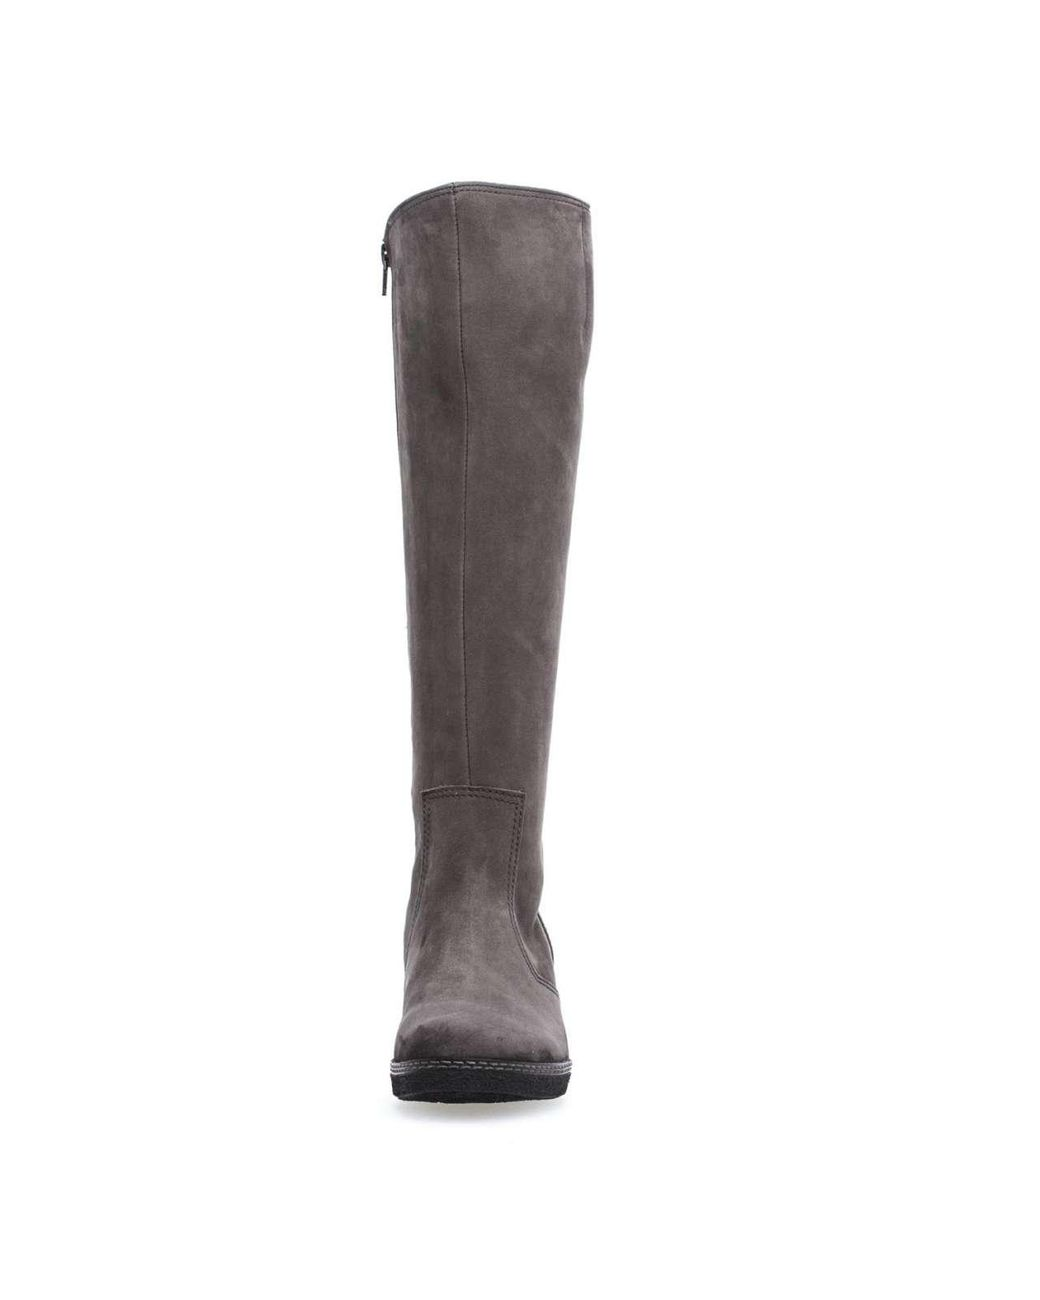 undefeated x well known detailed pictures Gabor Leather Wo Knee High Boots Grey Athen 76.667.31 in Gray - Lyst